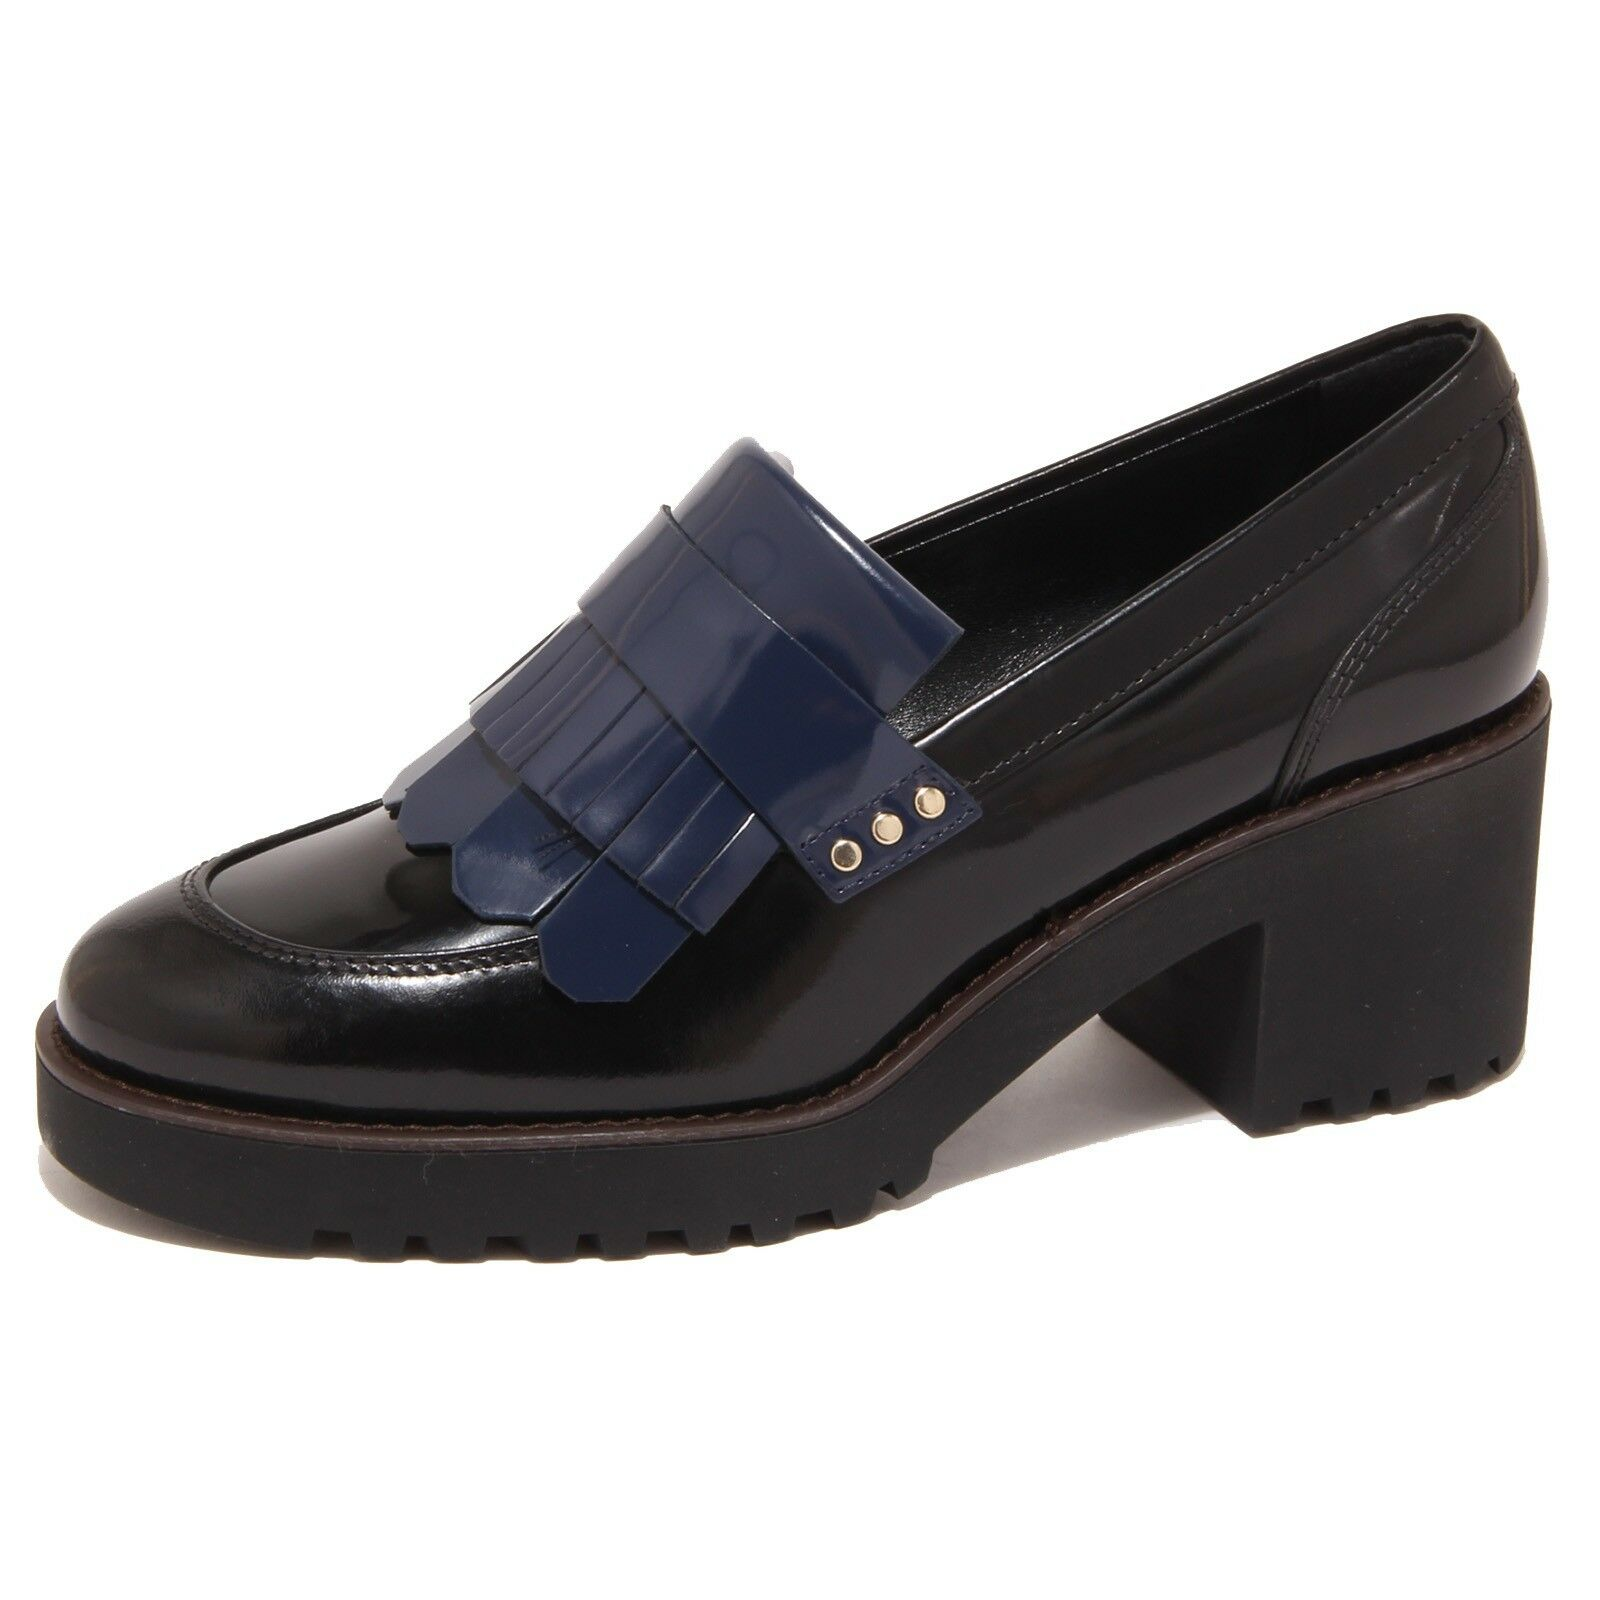 5896O mocassino HOGAN ROUTE nero/blu scarpa donna shoe woman